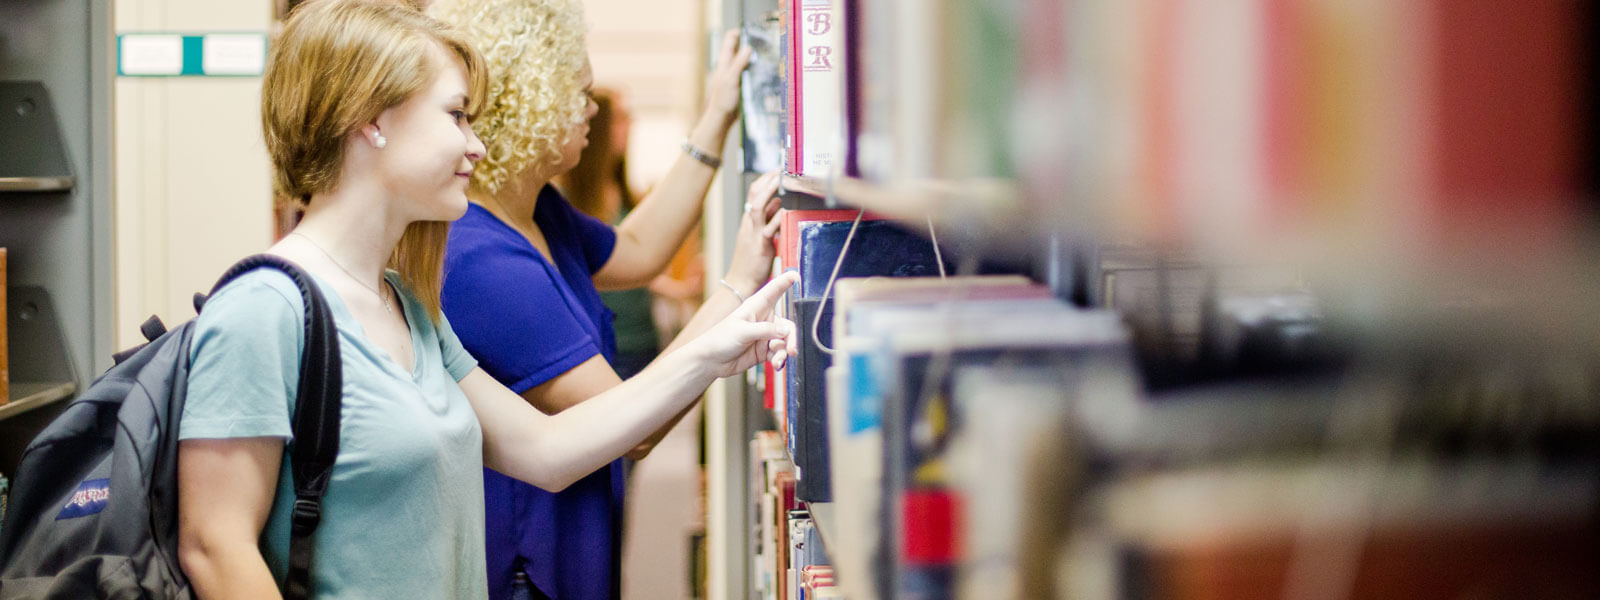 students browse shelves in library